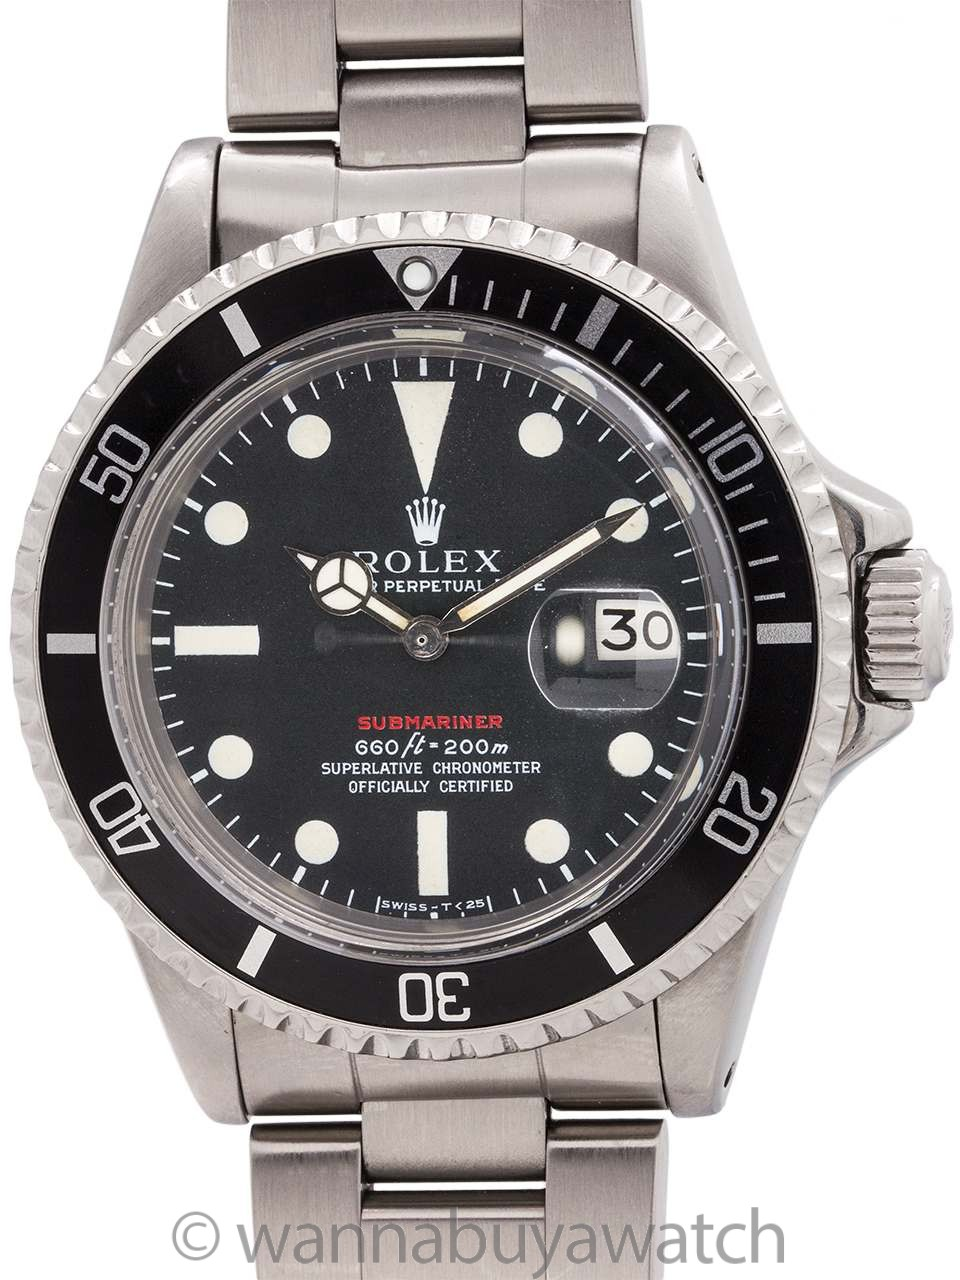 Rolex ref 1680 Red Submariner Mk IV Dial circa 1969